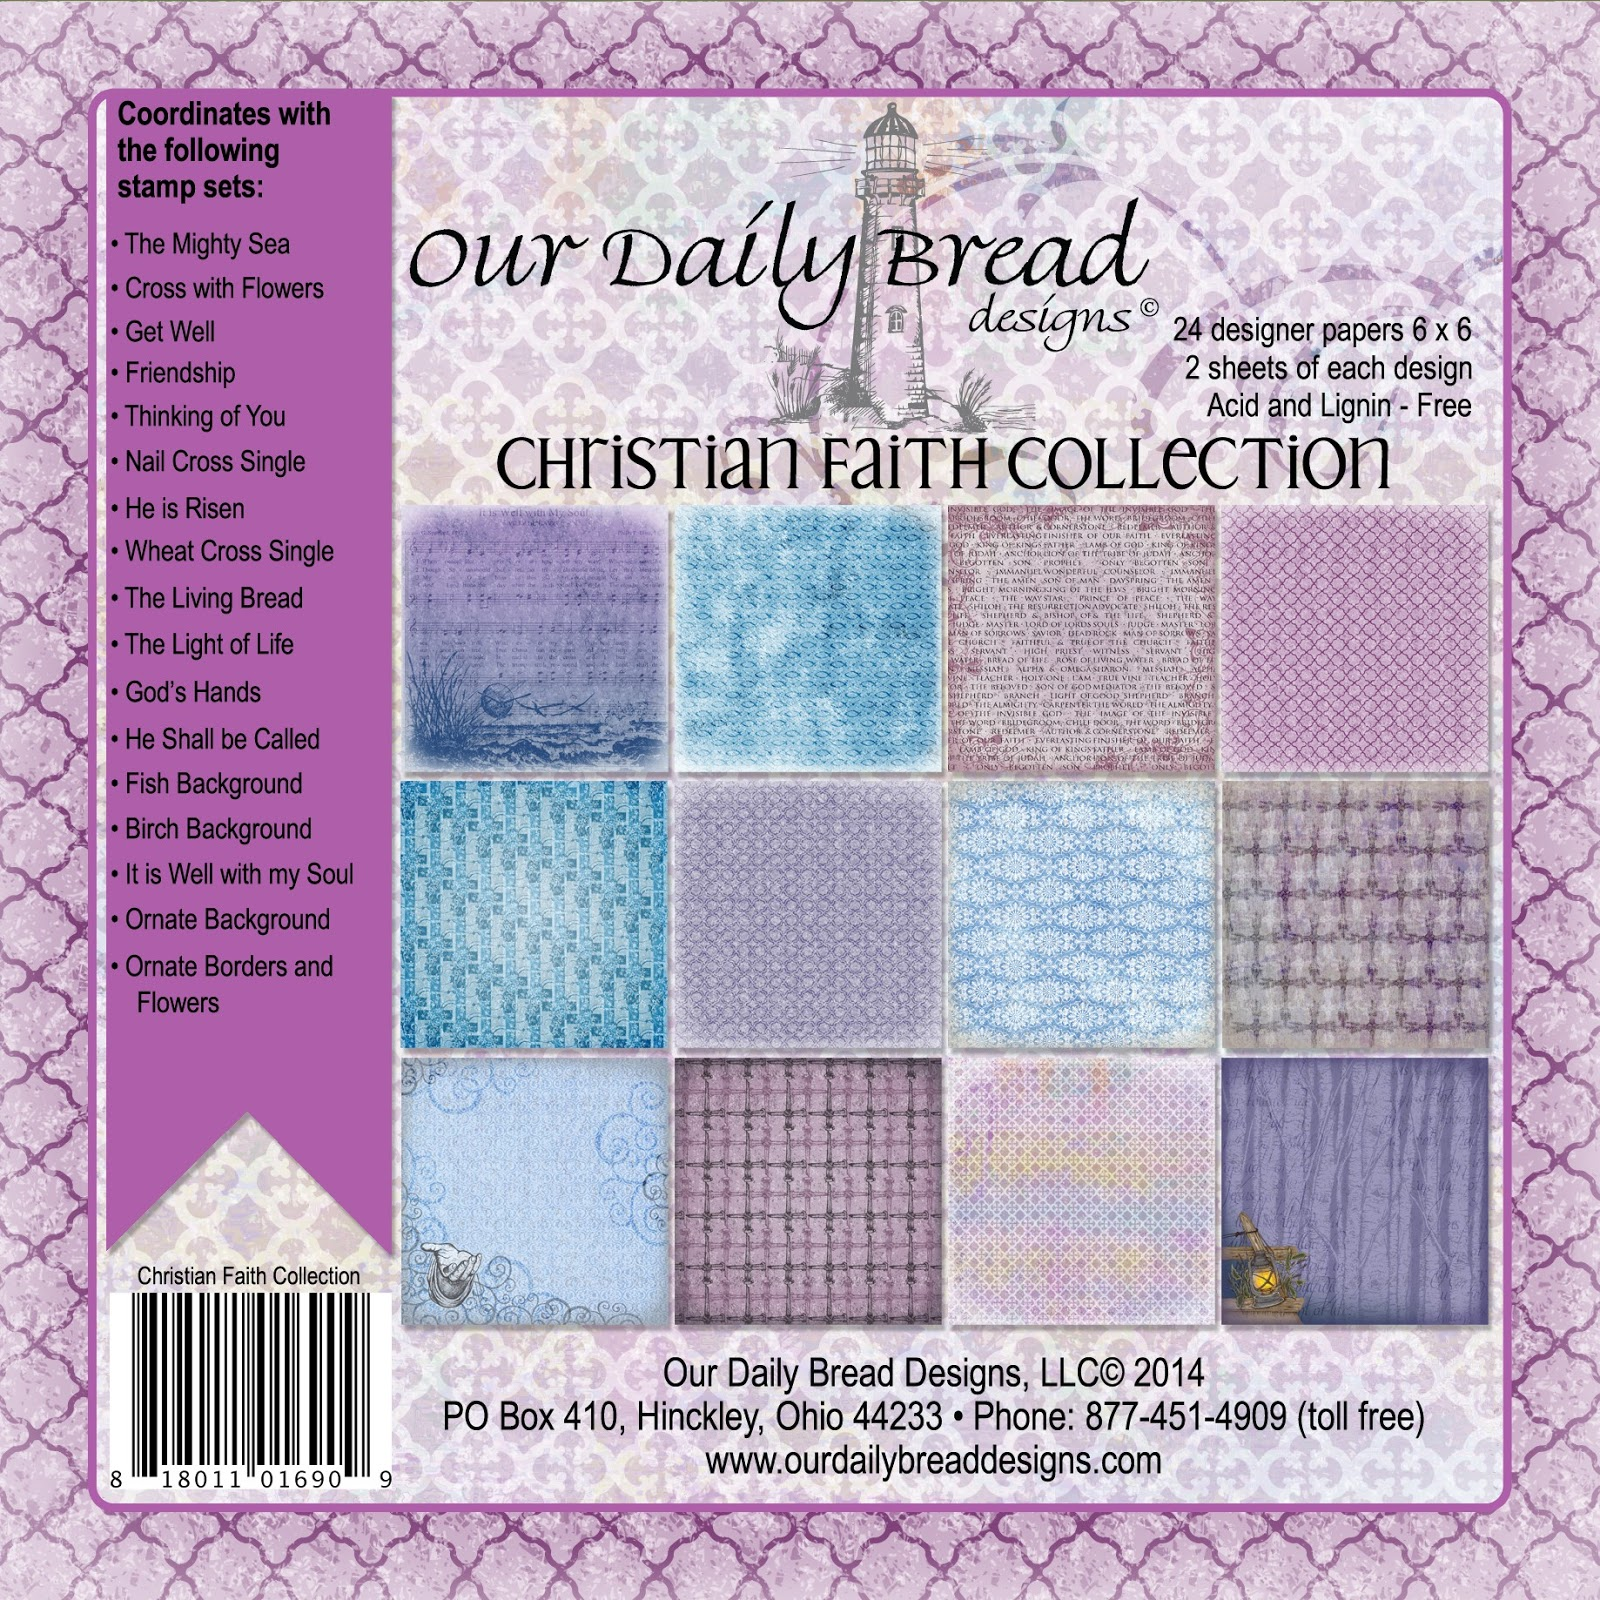 https://www.ourdailybreaddesigns.com/index.php/christian-faith-collection-6x6-paper-pad.html